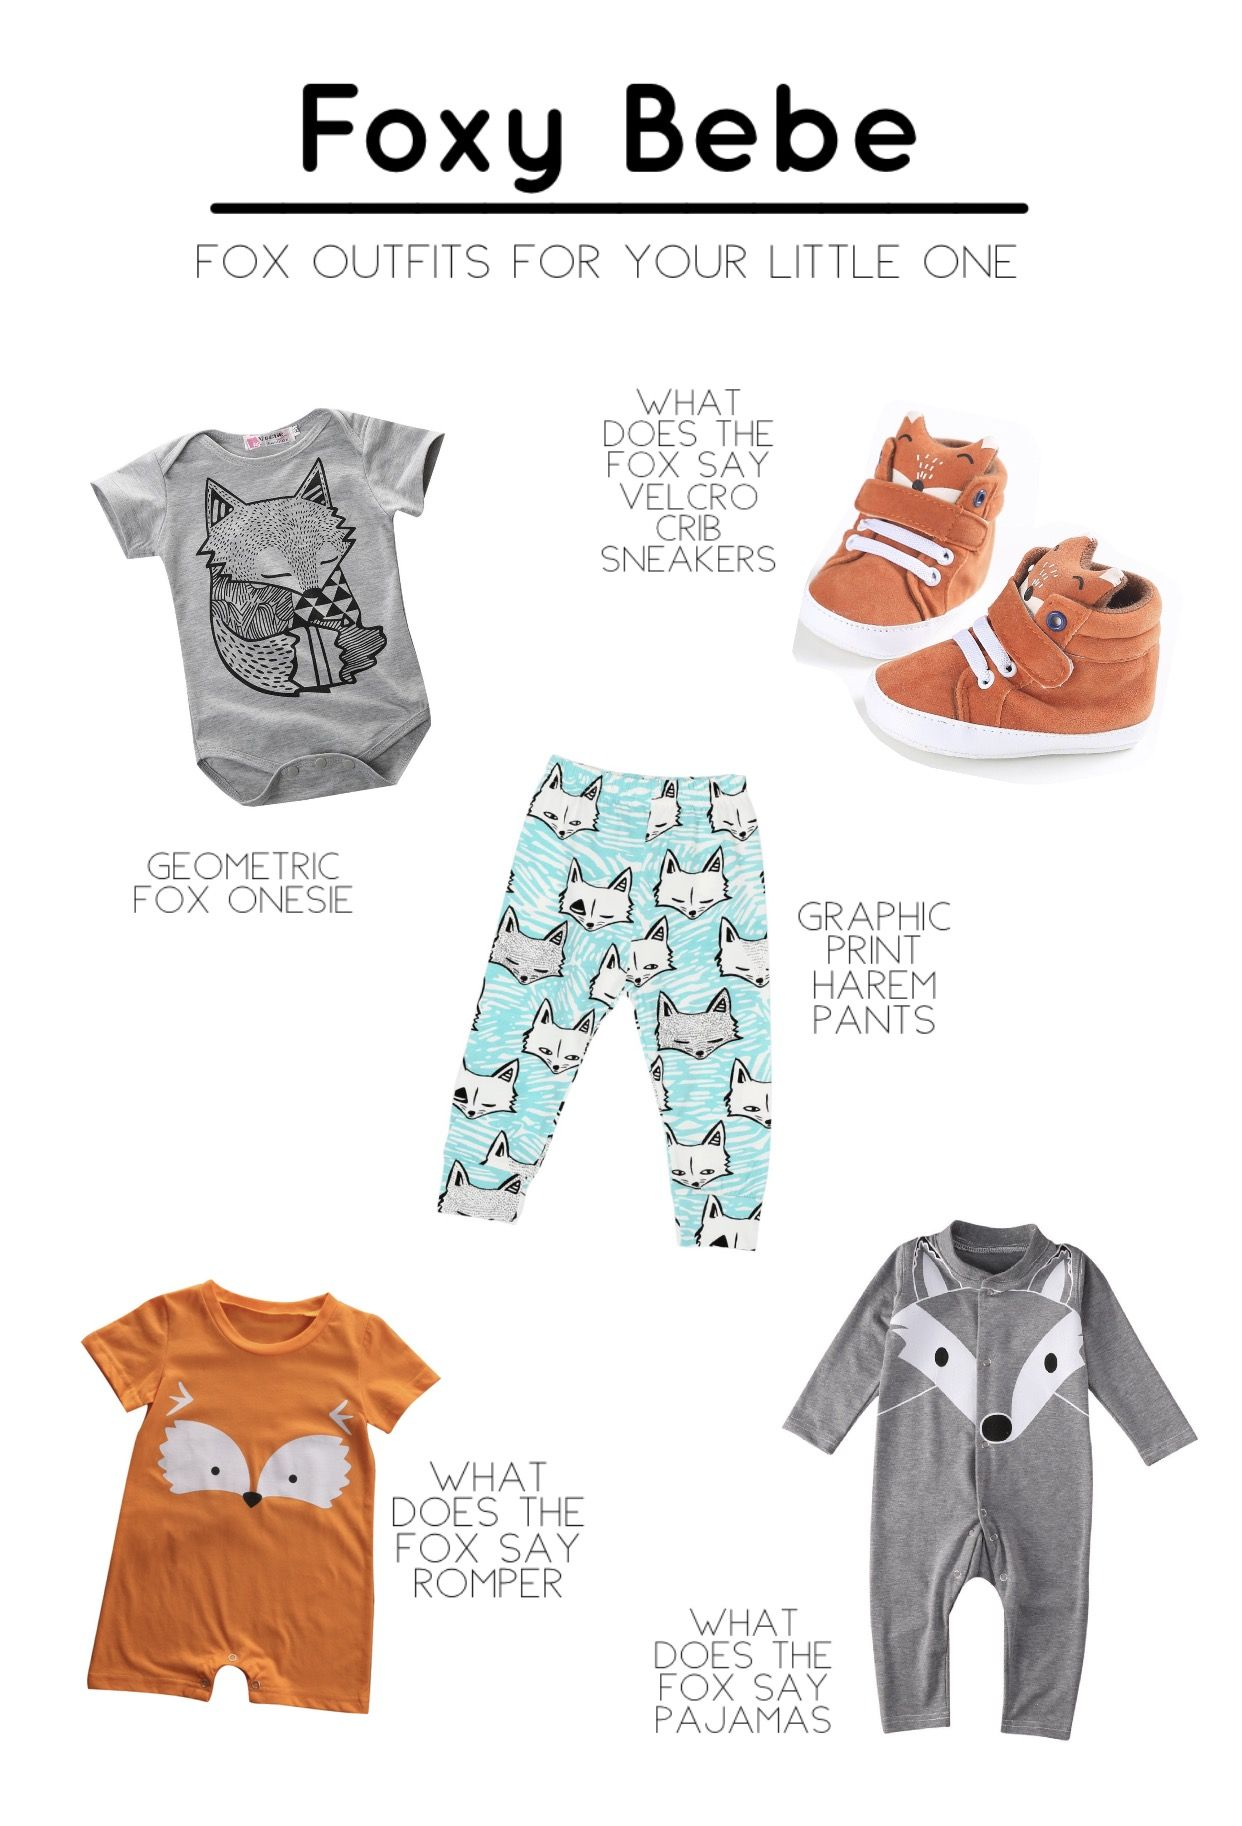 FREE WORLDWIDE SHIPPING ON PURCHASES OVER $50 Cutest baby clothes